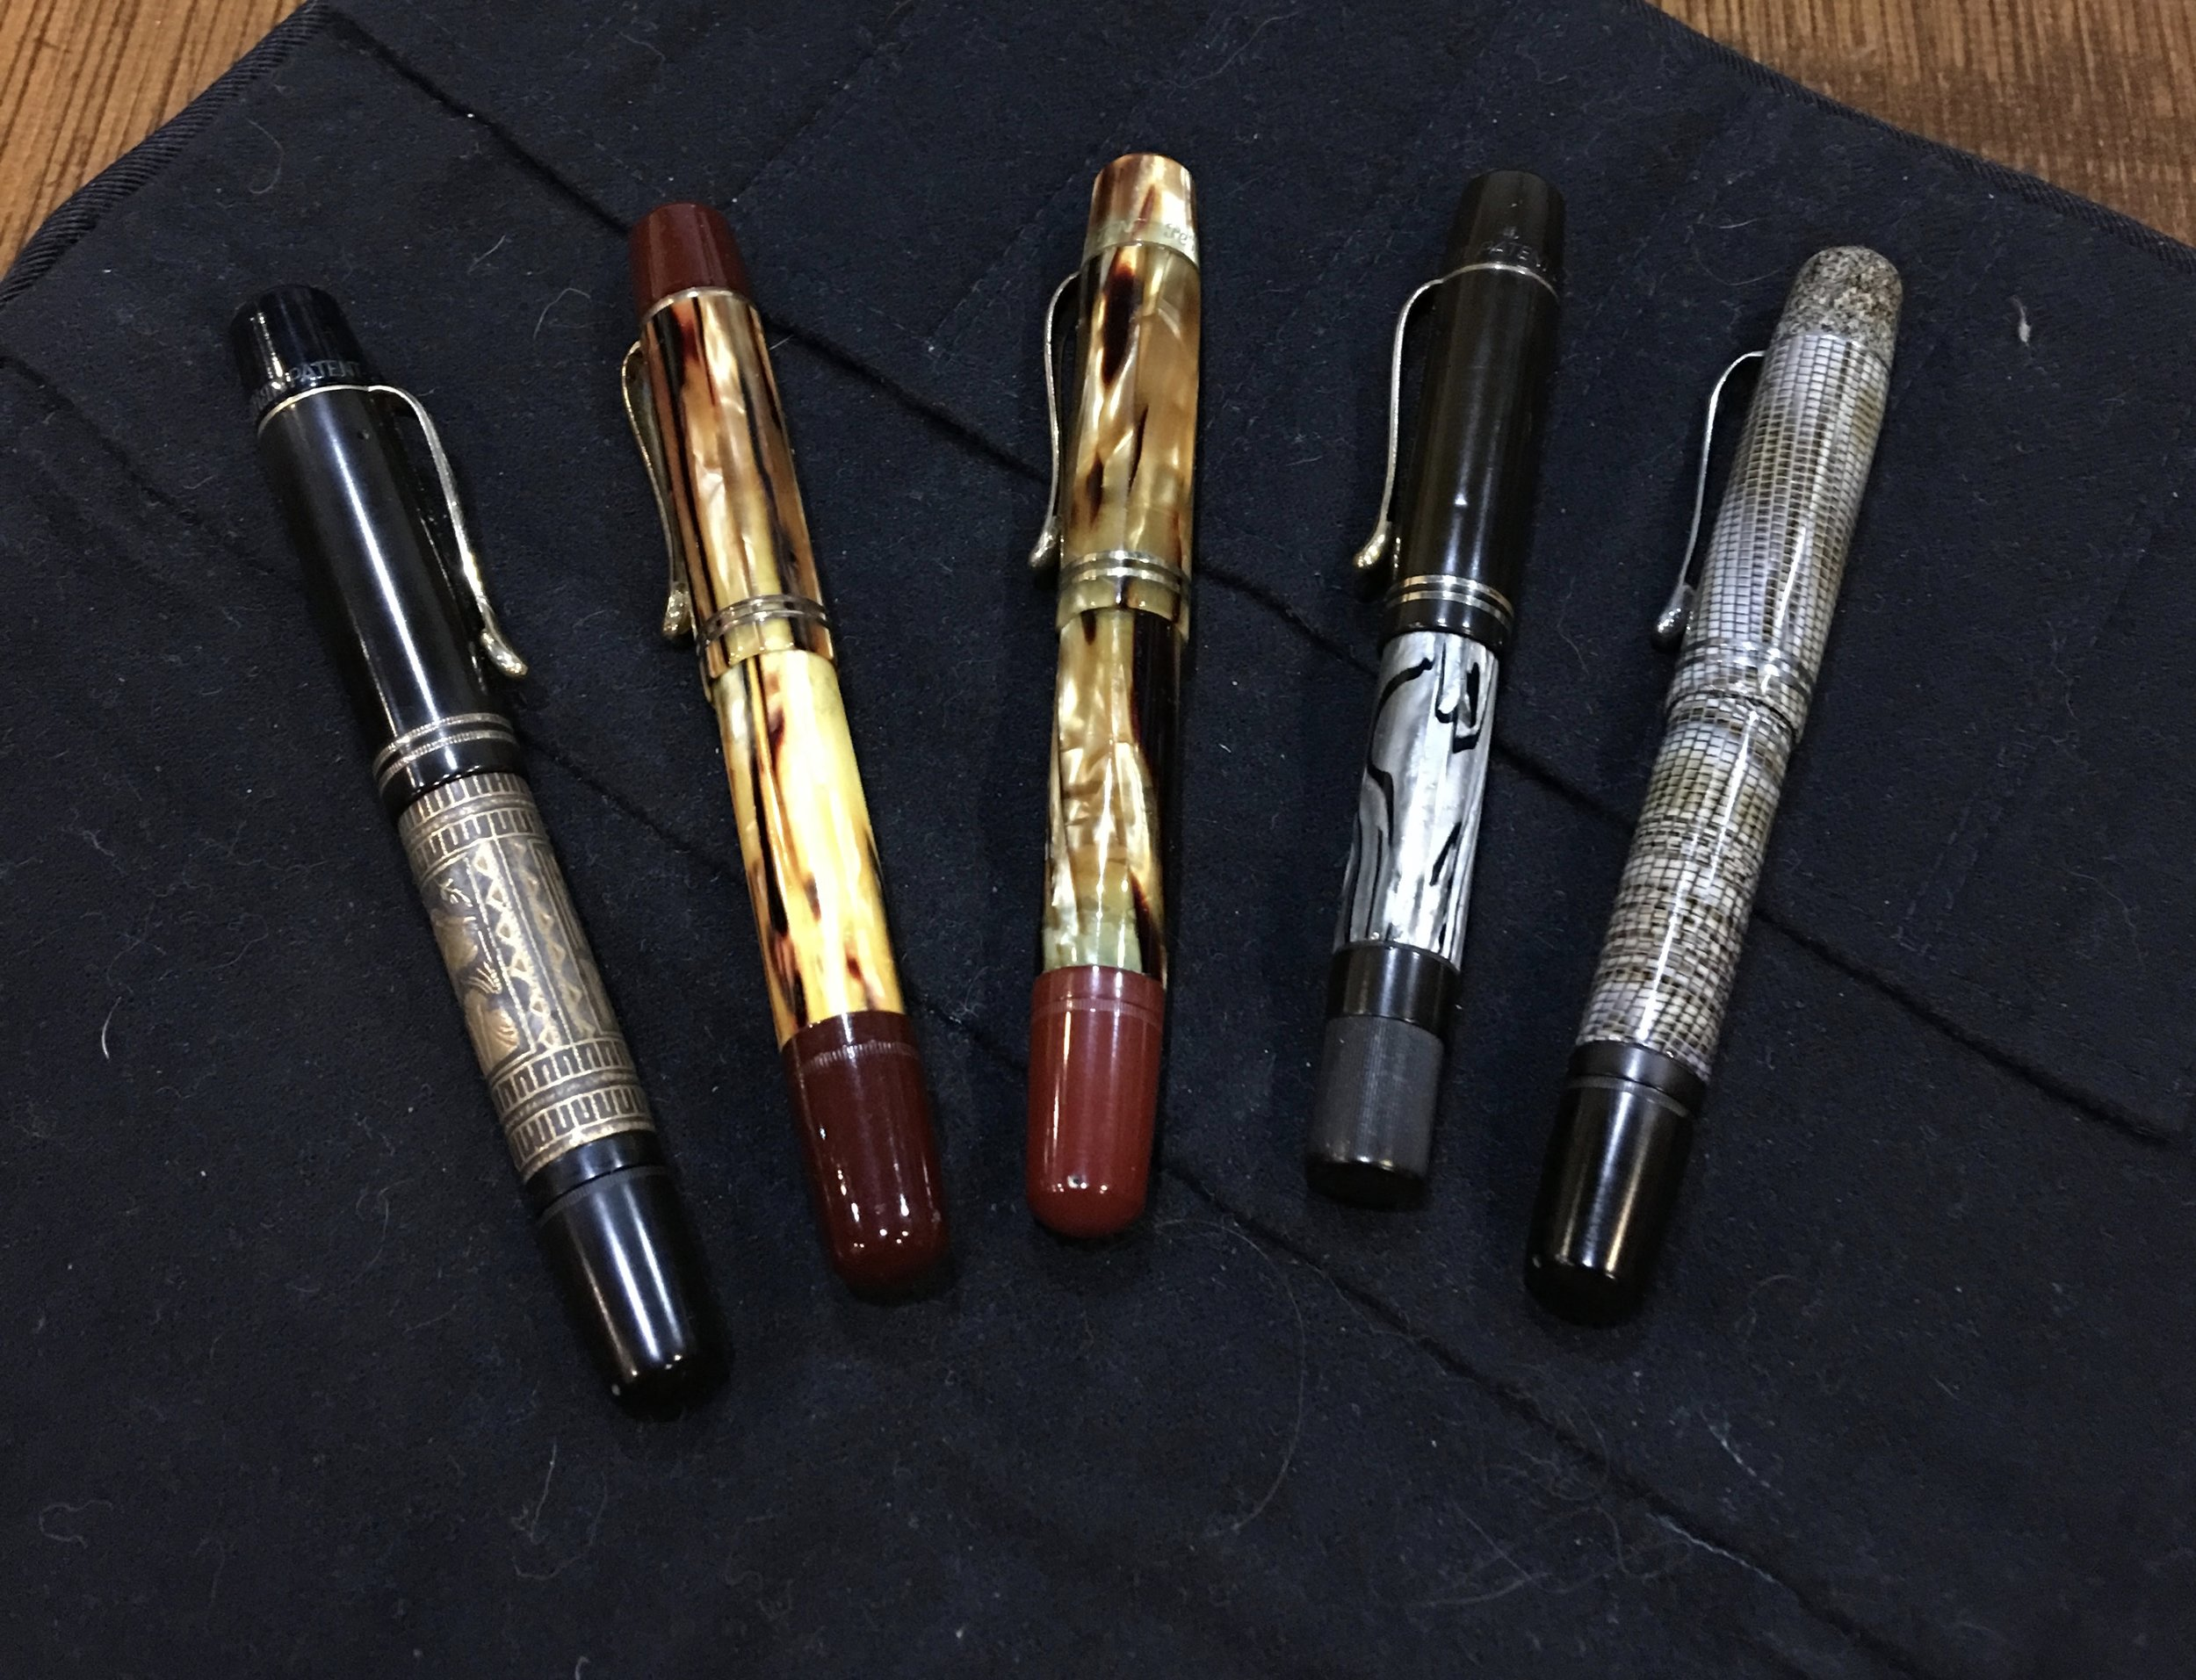 Vintage 1930s Pelikans Closed